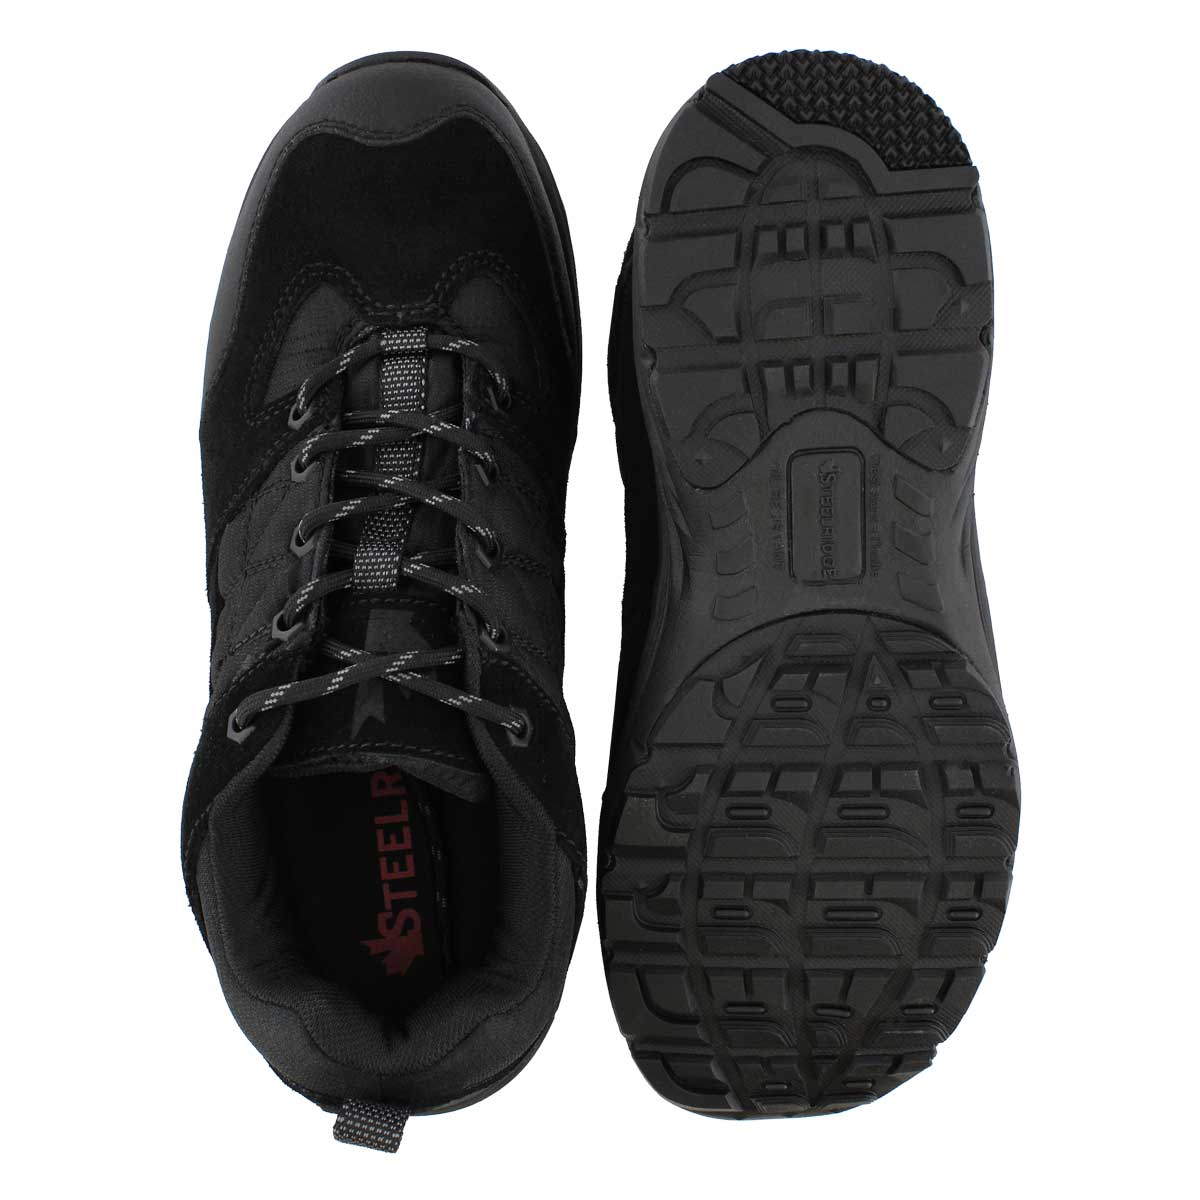 Mns Flash black lace up CSA safety shoe